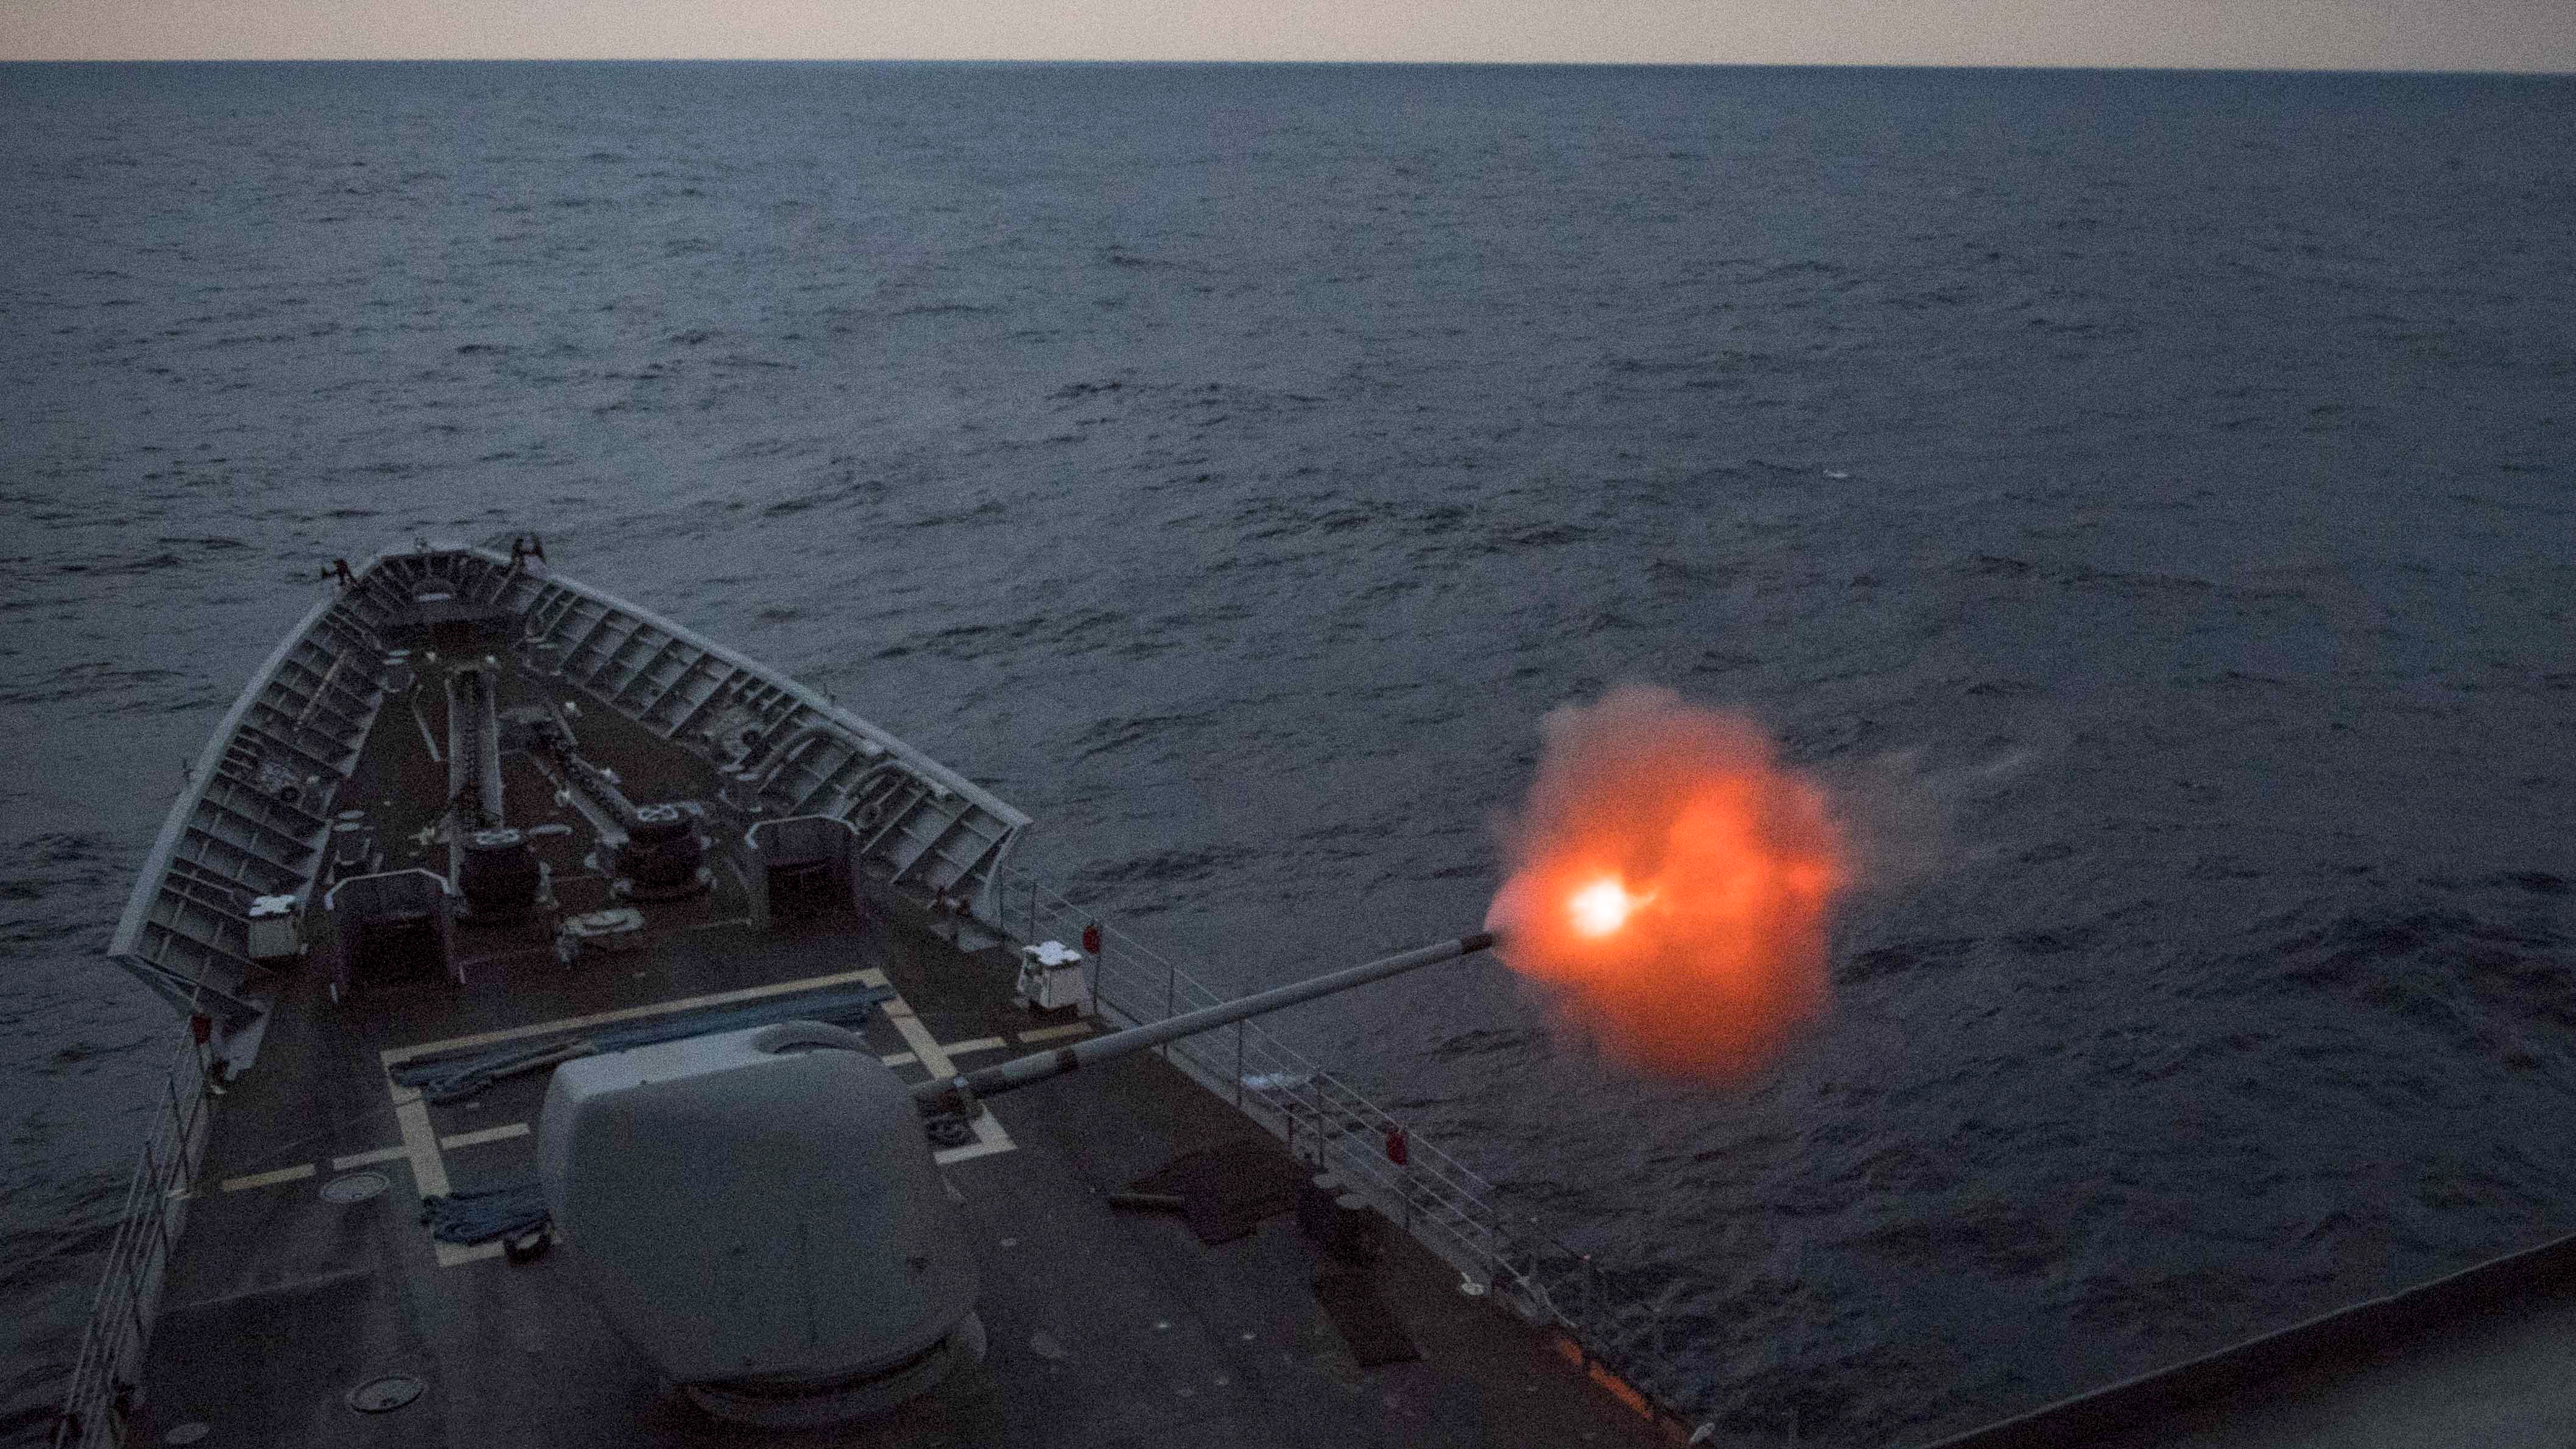 The Ticonderoga-class guided-missile cruiser USS Chancellorsville (CG 62) fires its 5-inch gun during a live-fire gunnery exercise. Chancellorsville is forward-deployed to the U.S. 7th Fleet area of operations in support of security and stability in the Indo-Pacific region. (MC2 Jeremy Graham/Navy)